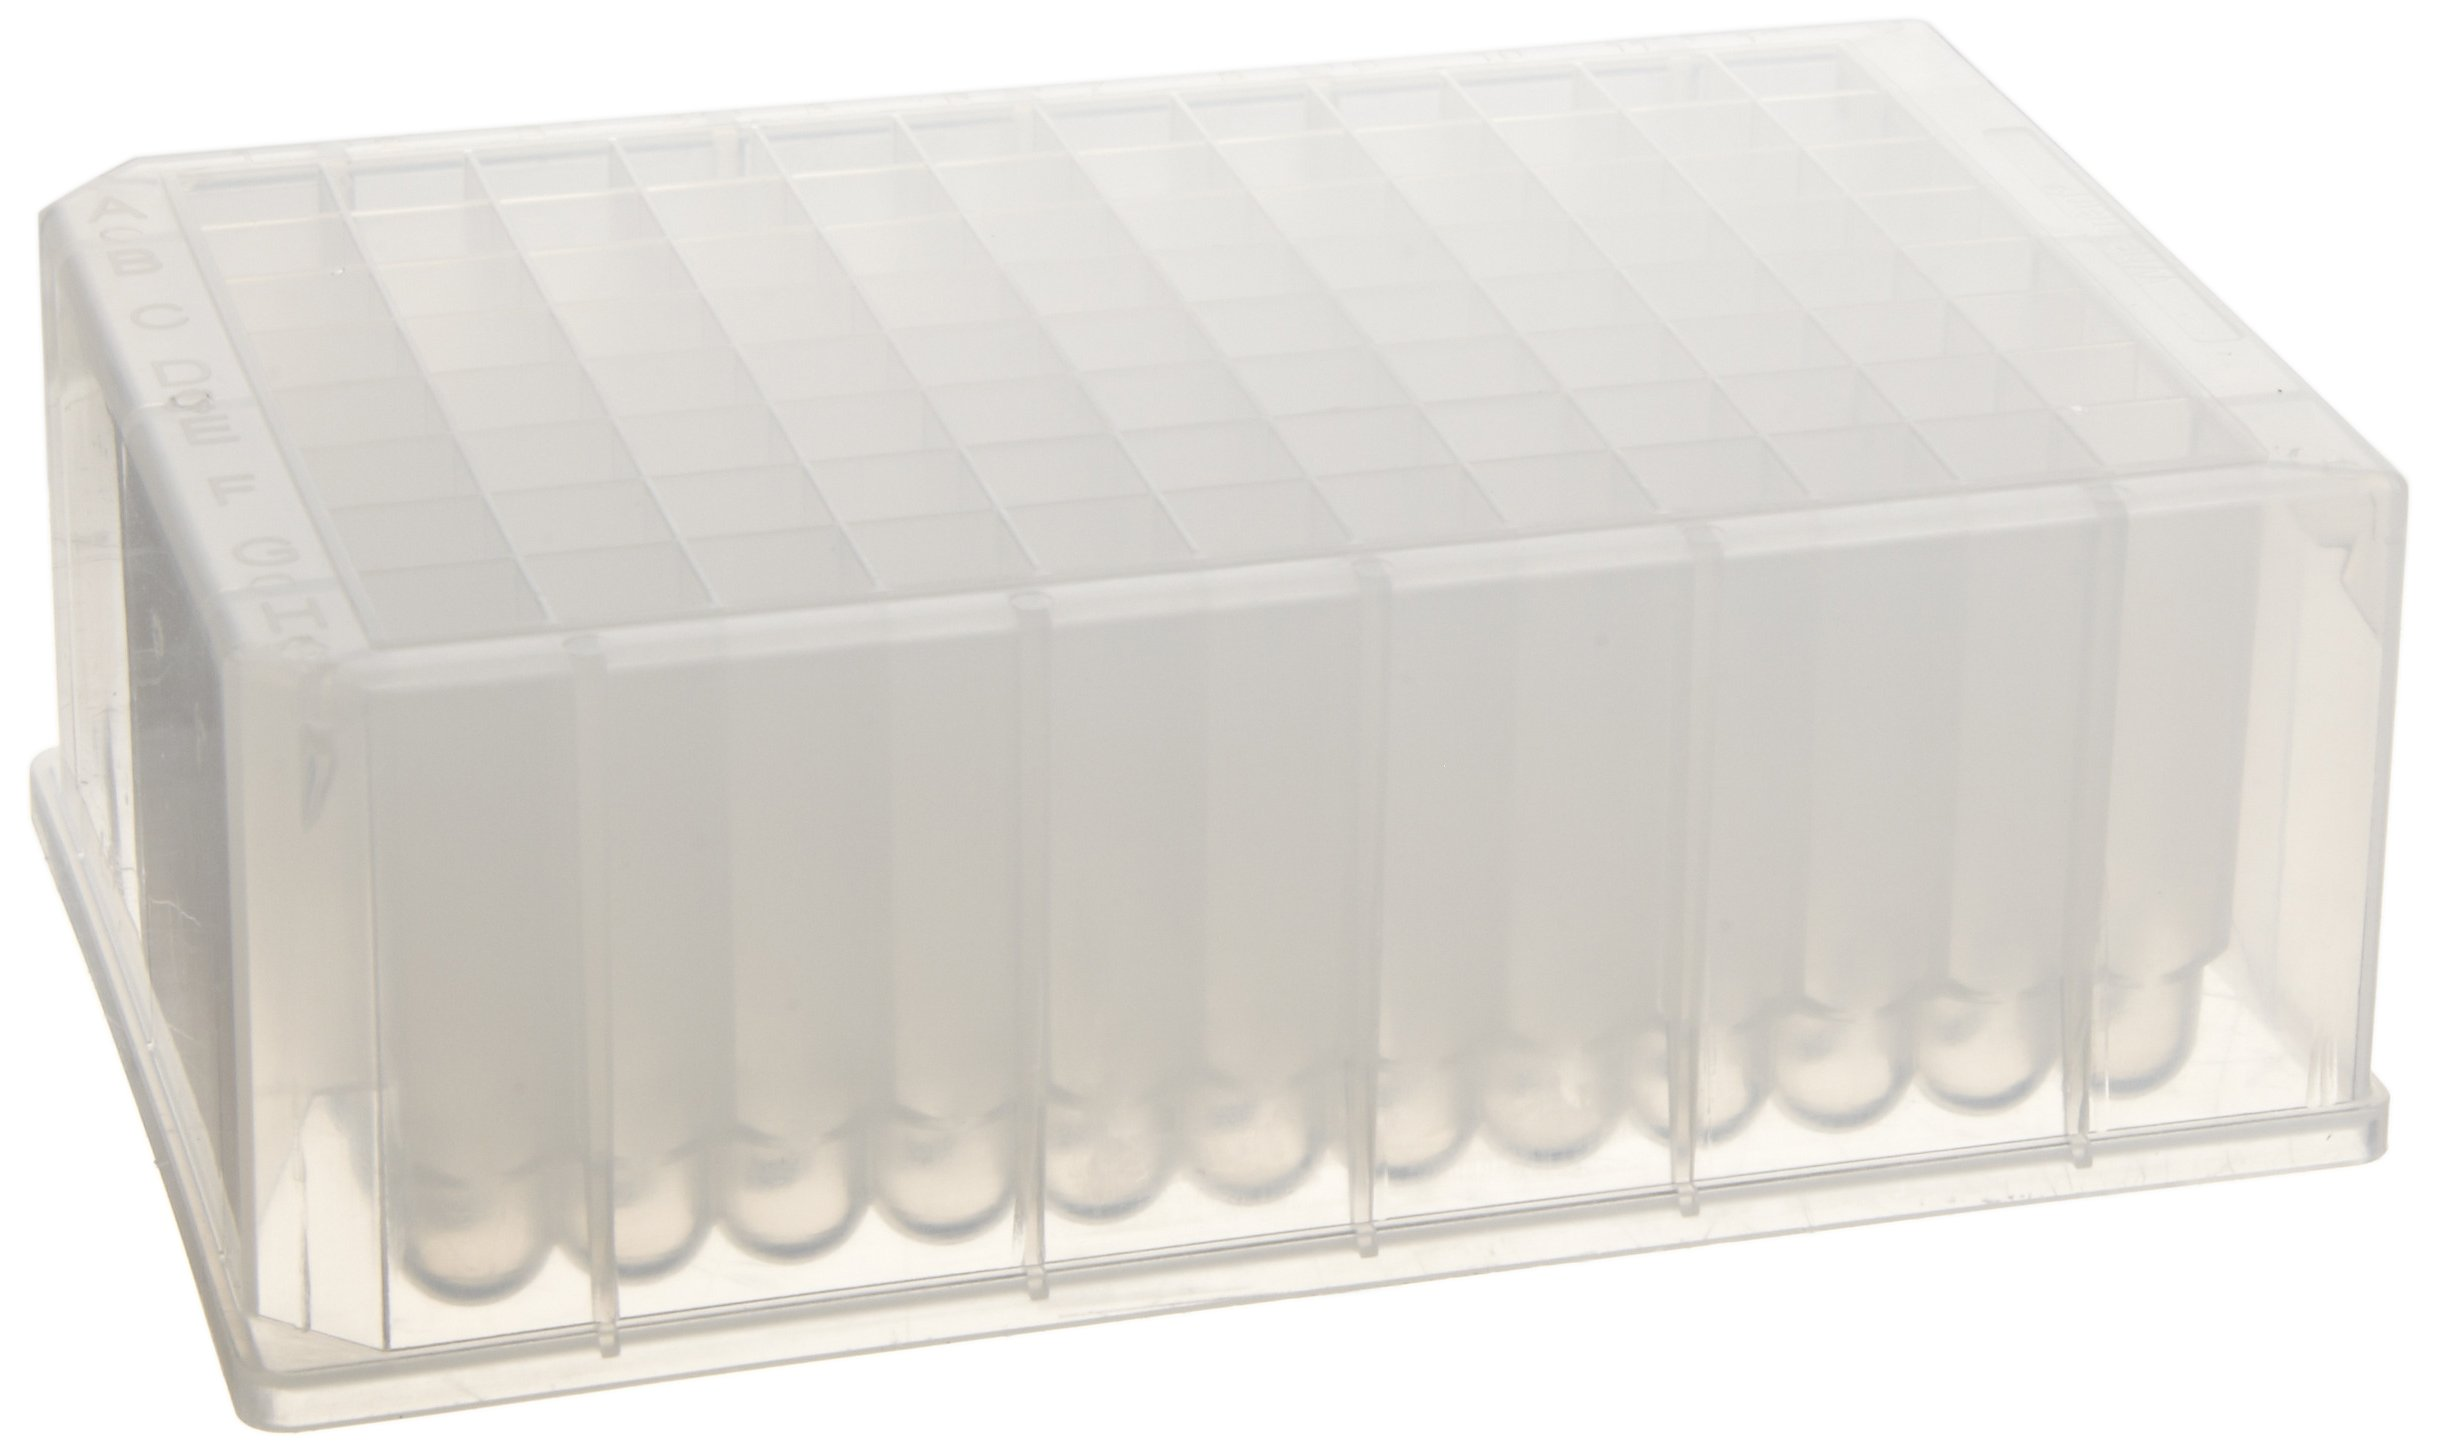 Whatman 7701-5200 Natural Polypropylene 96 Wells Uniplate Collection and Analysis Microplate with Round Well Bottom, 2mL Volume (Pack of 25) by Whatman